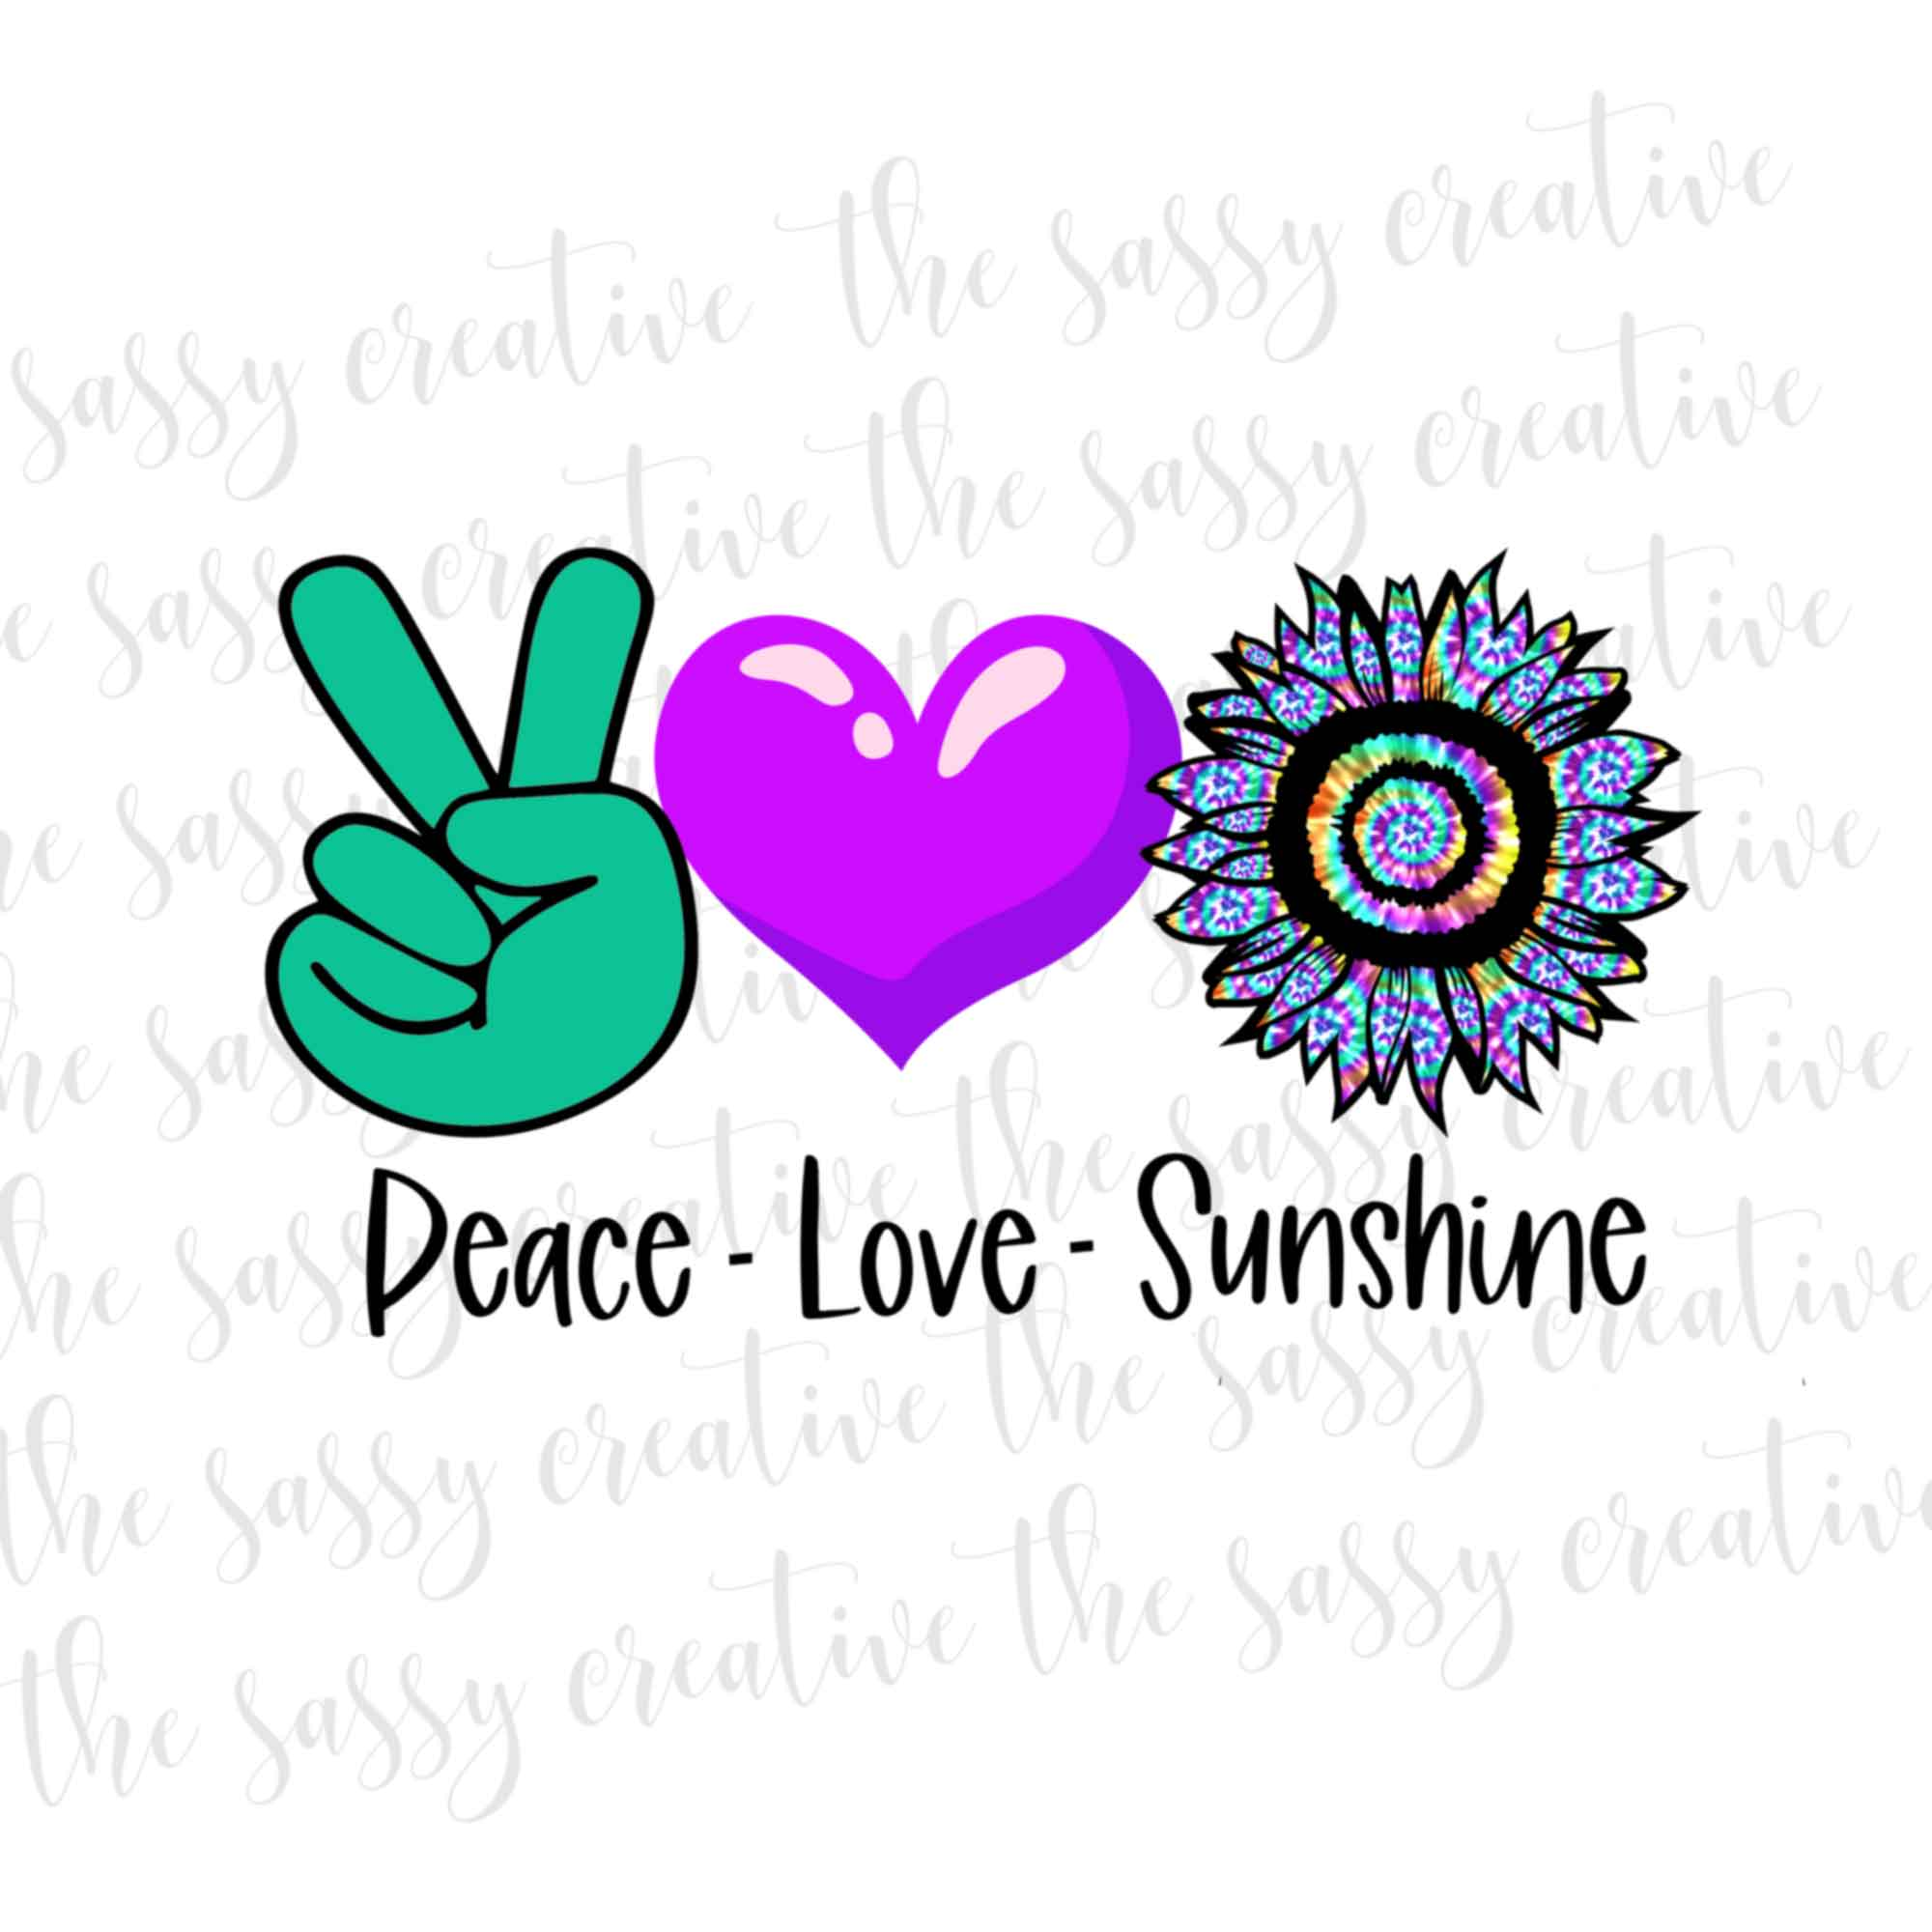 peacelovesunshinecover